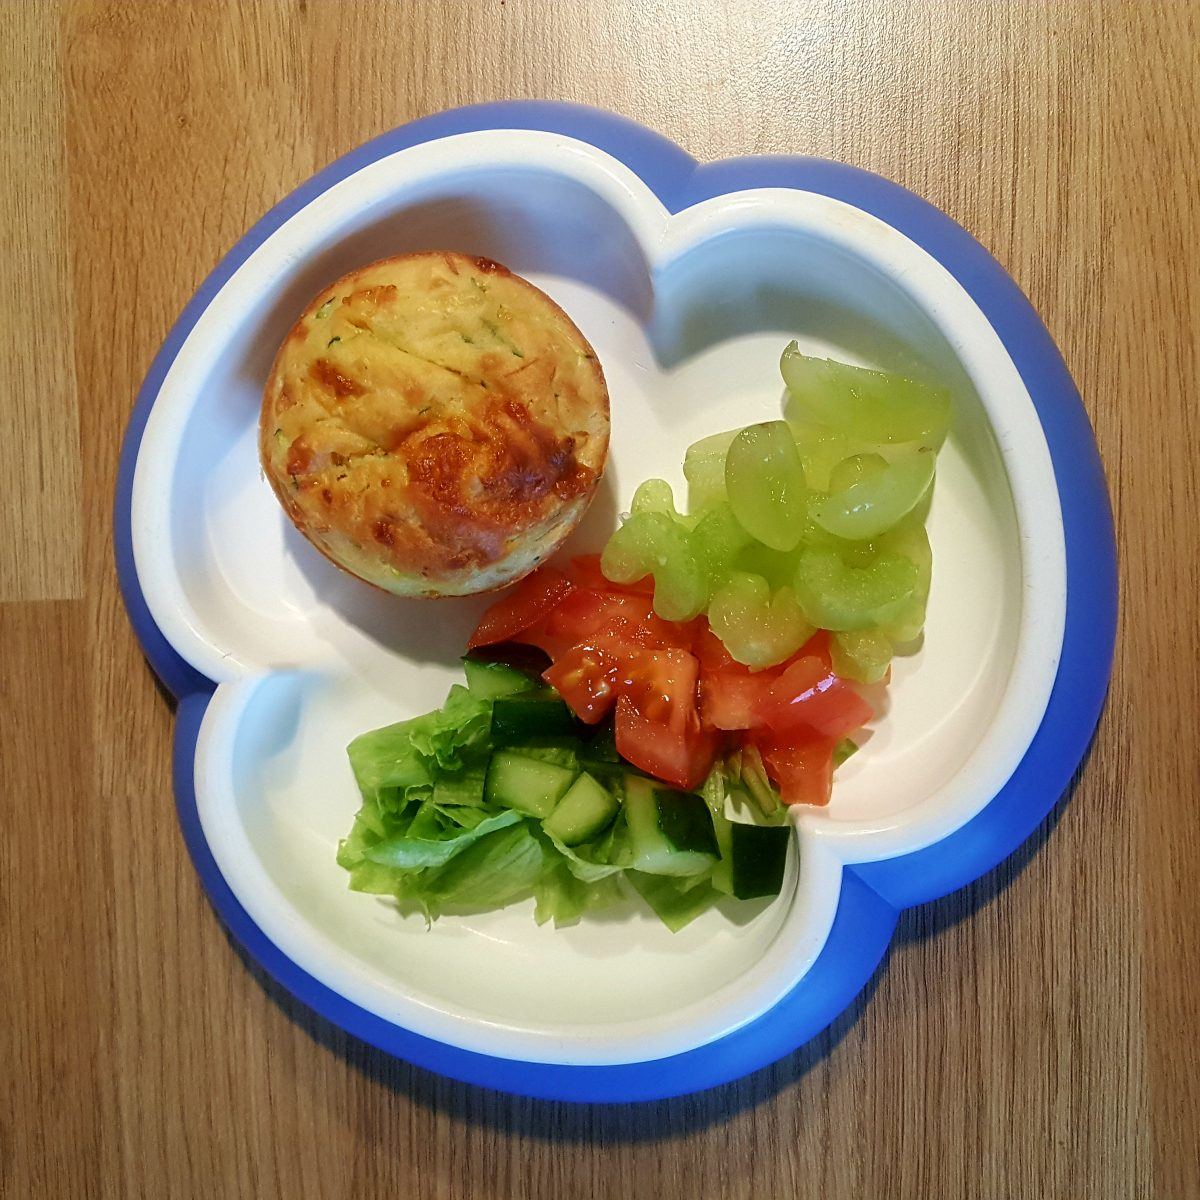 Carrot and courgette savoury muffins